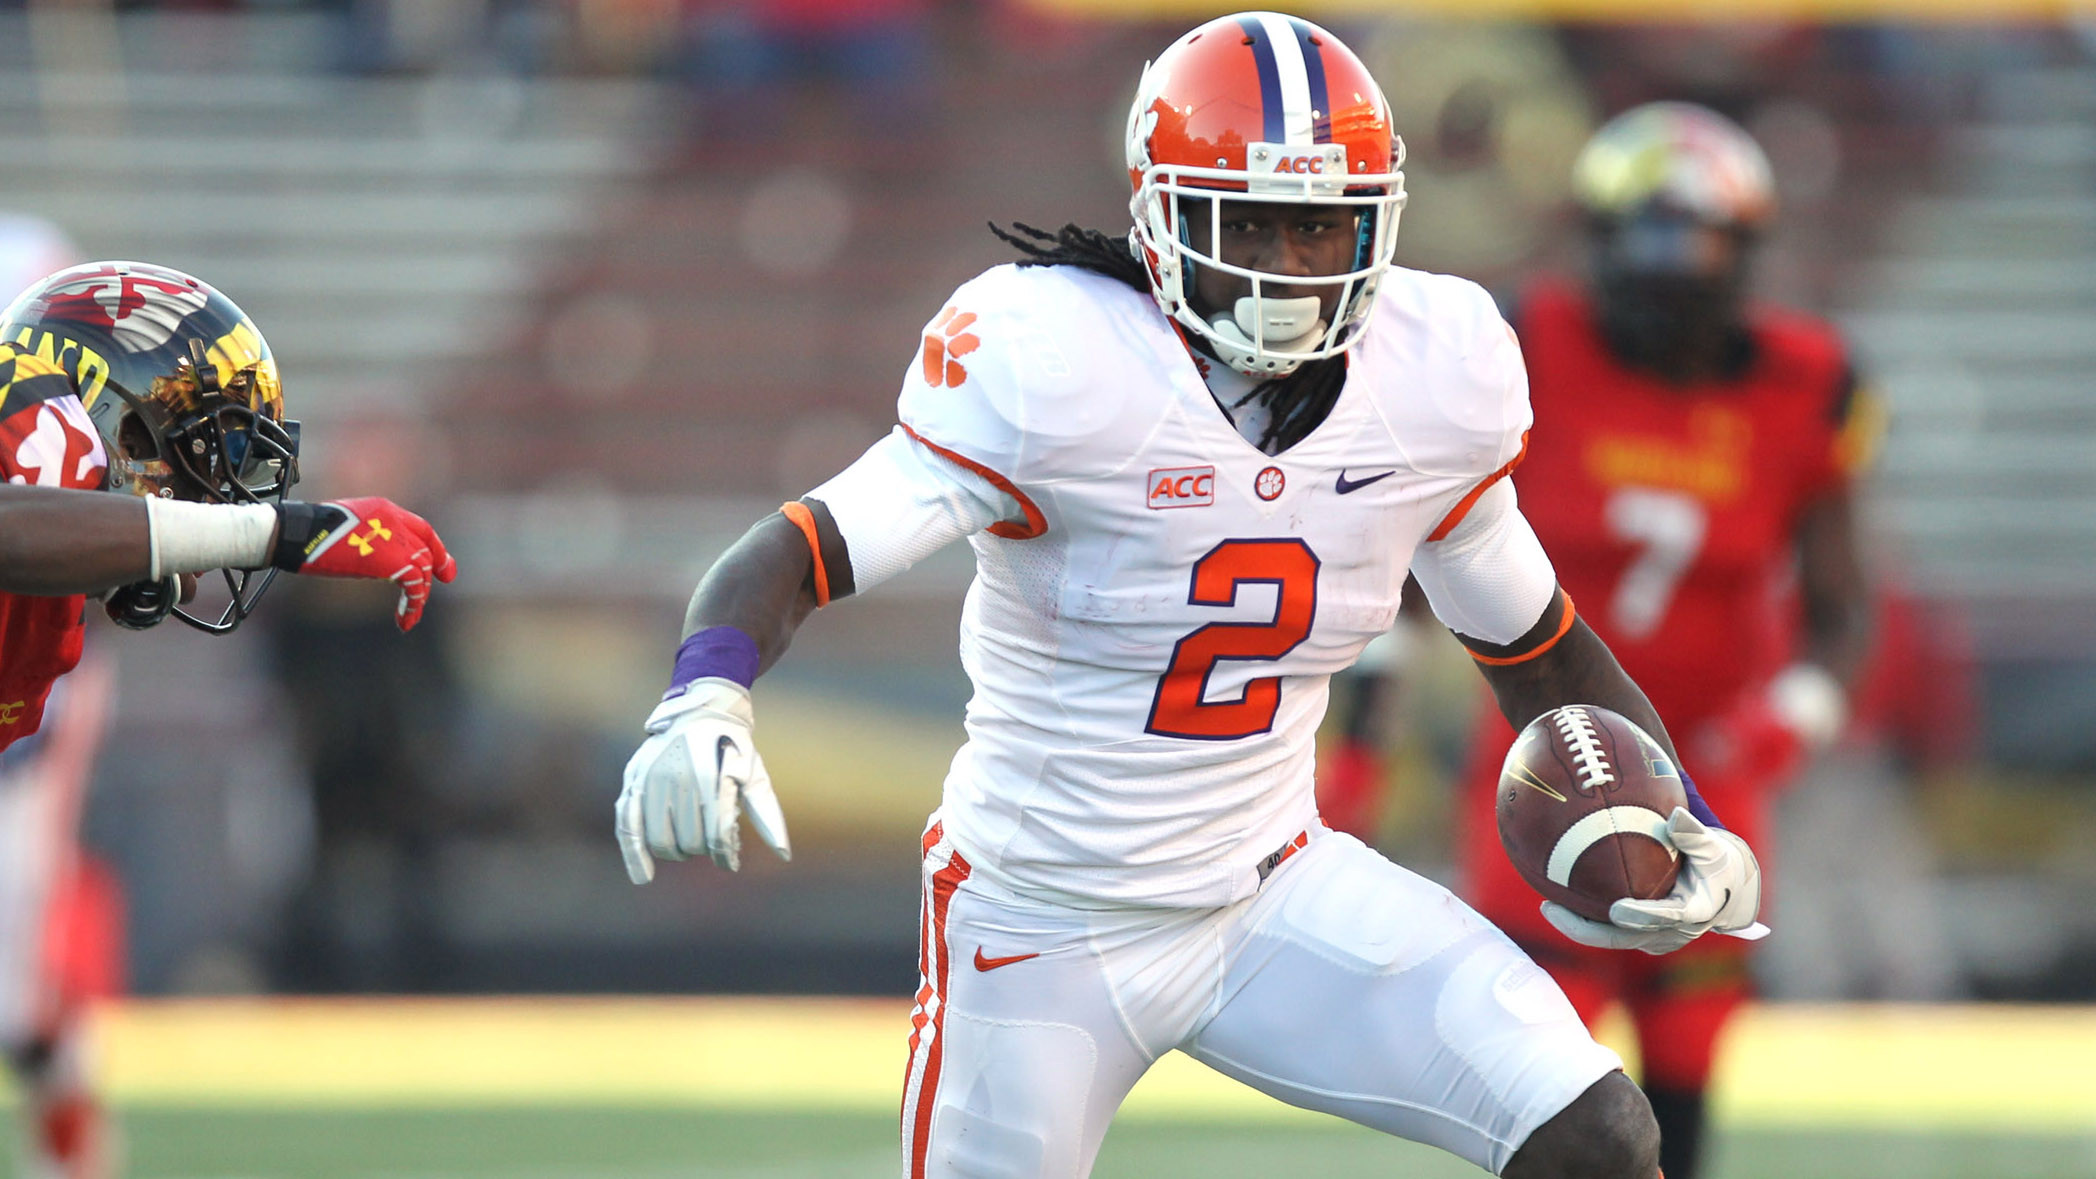 Brandon Thomas & Sammy Watkins Earn ACC Player of the Week Honors